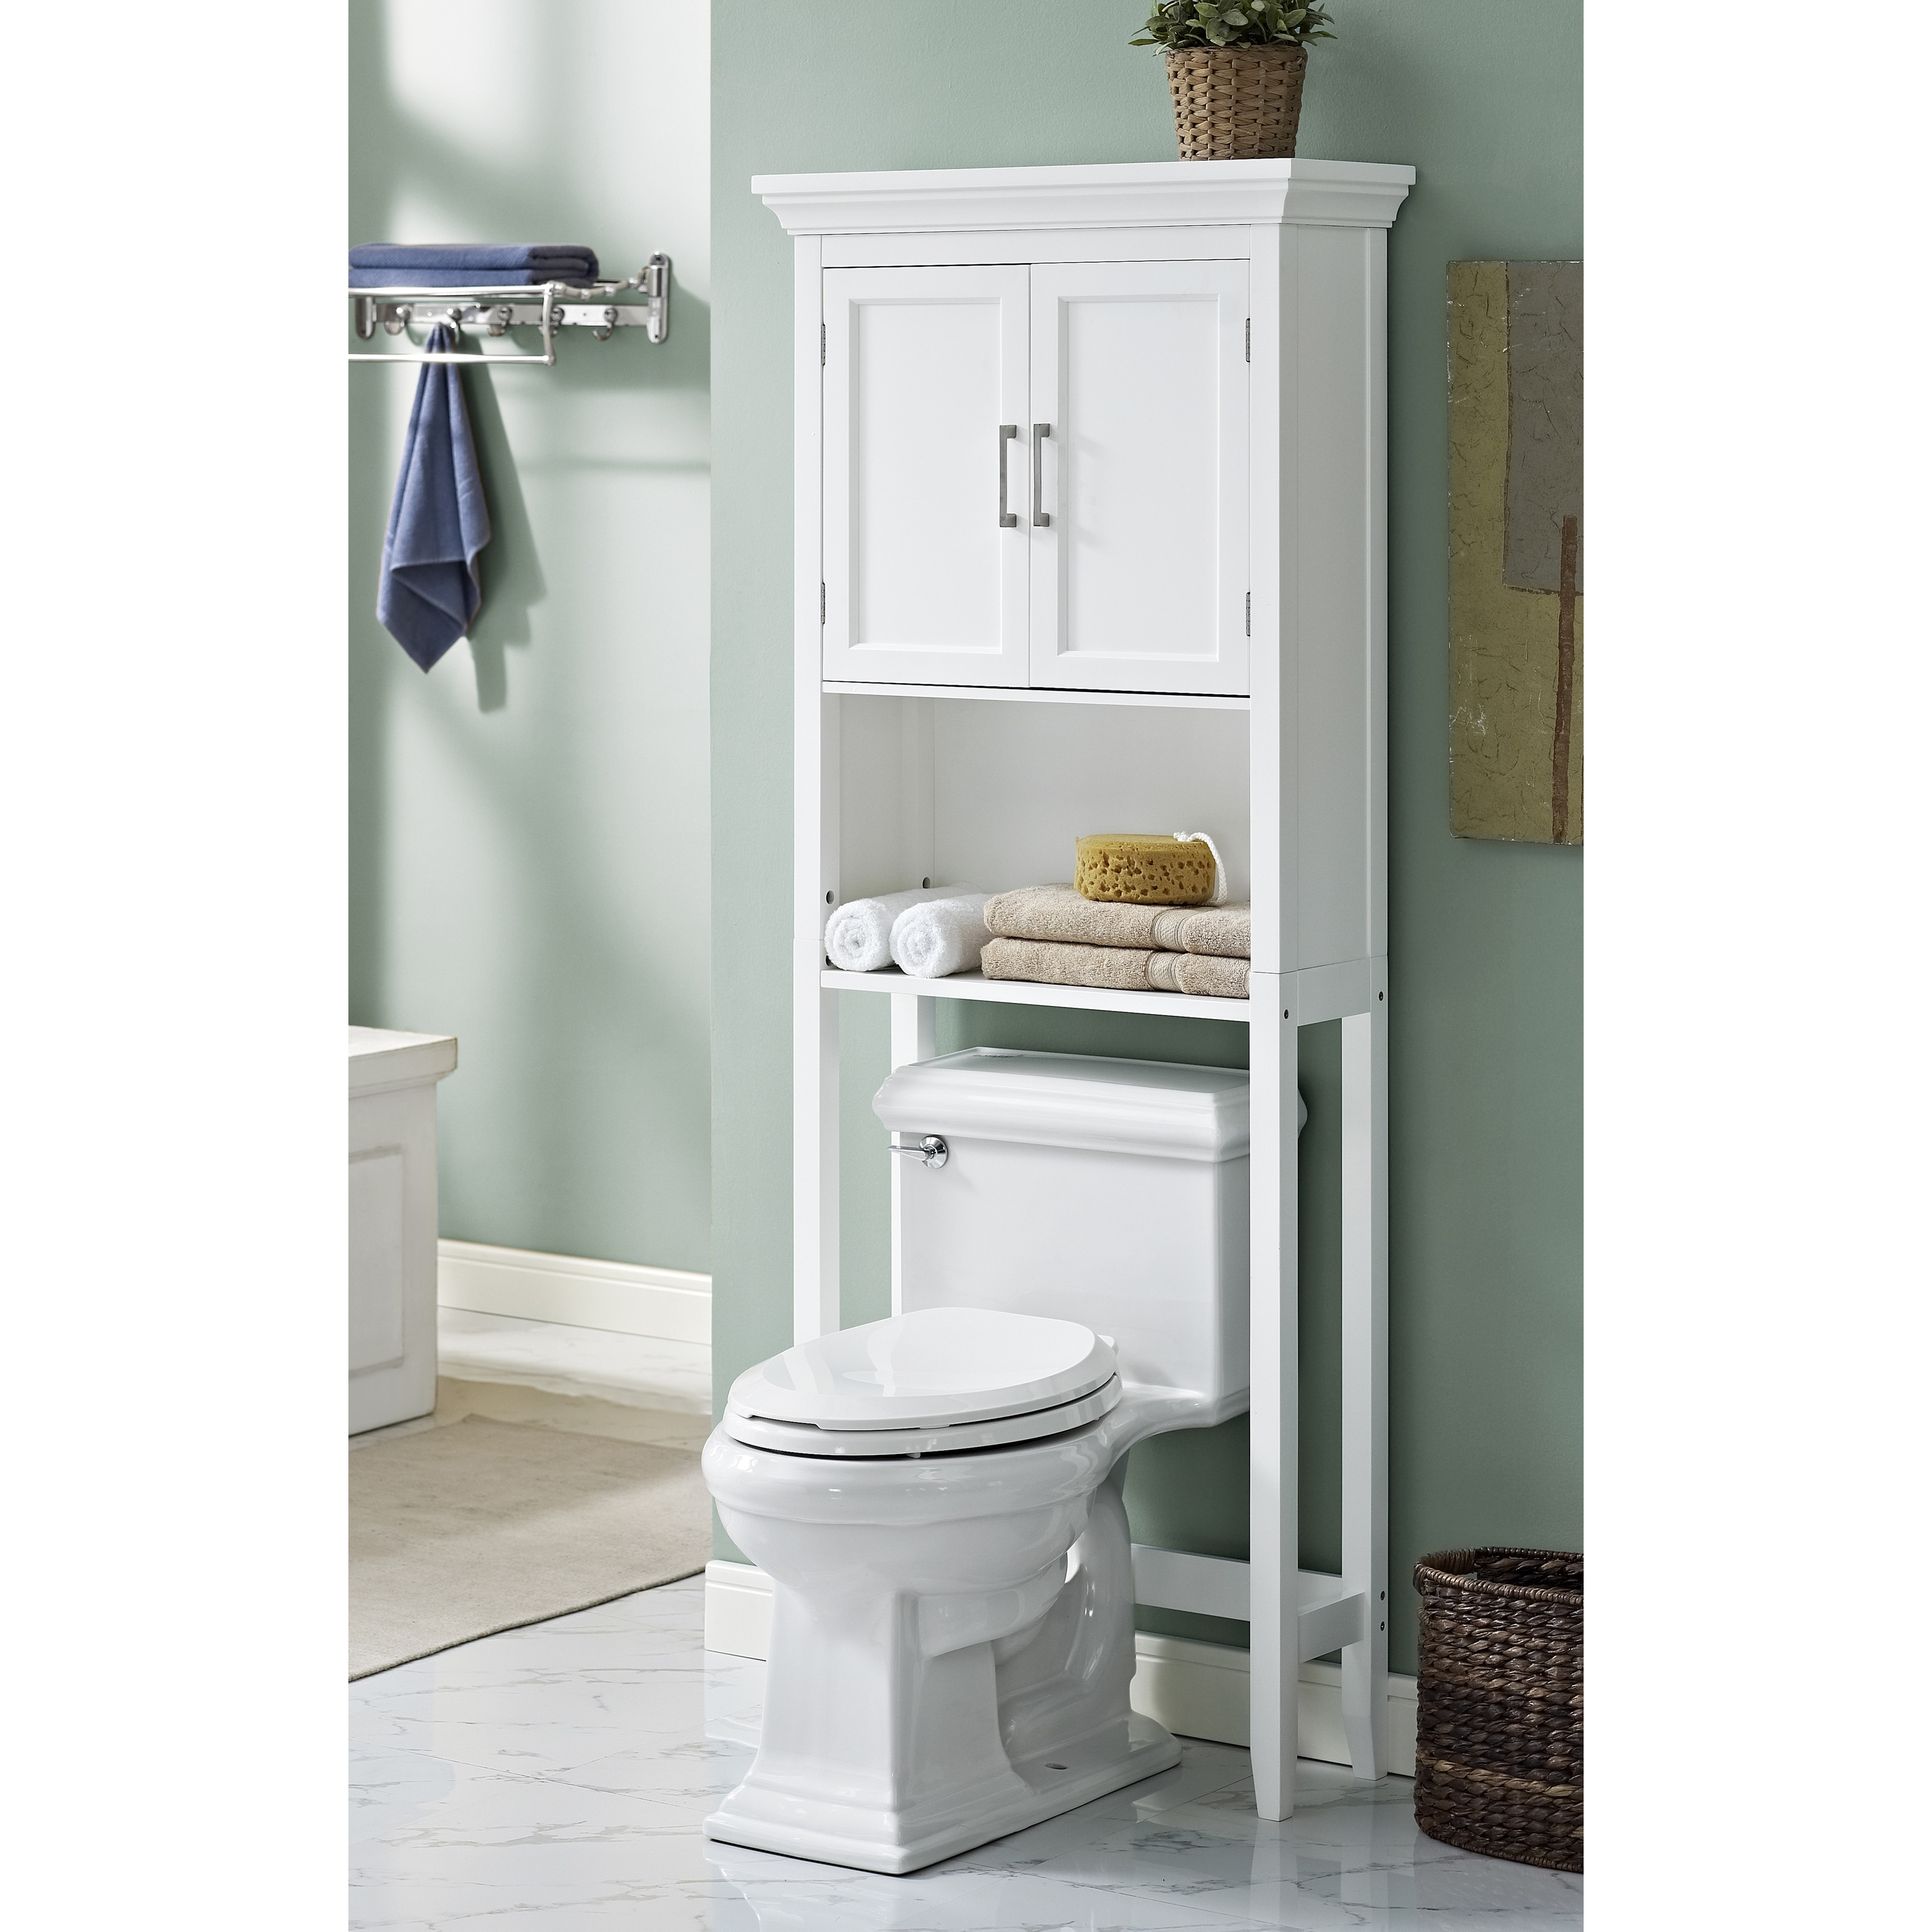 Wyndenhall Hayes White Bathroom Space Saver Cabinet Cac Jpg 3100x3100  Outhouse Space Saver Bathroom